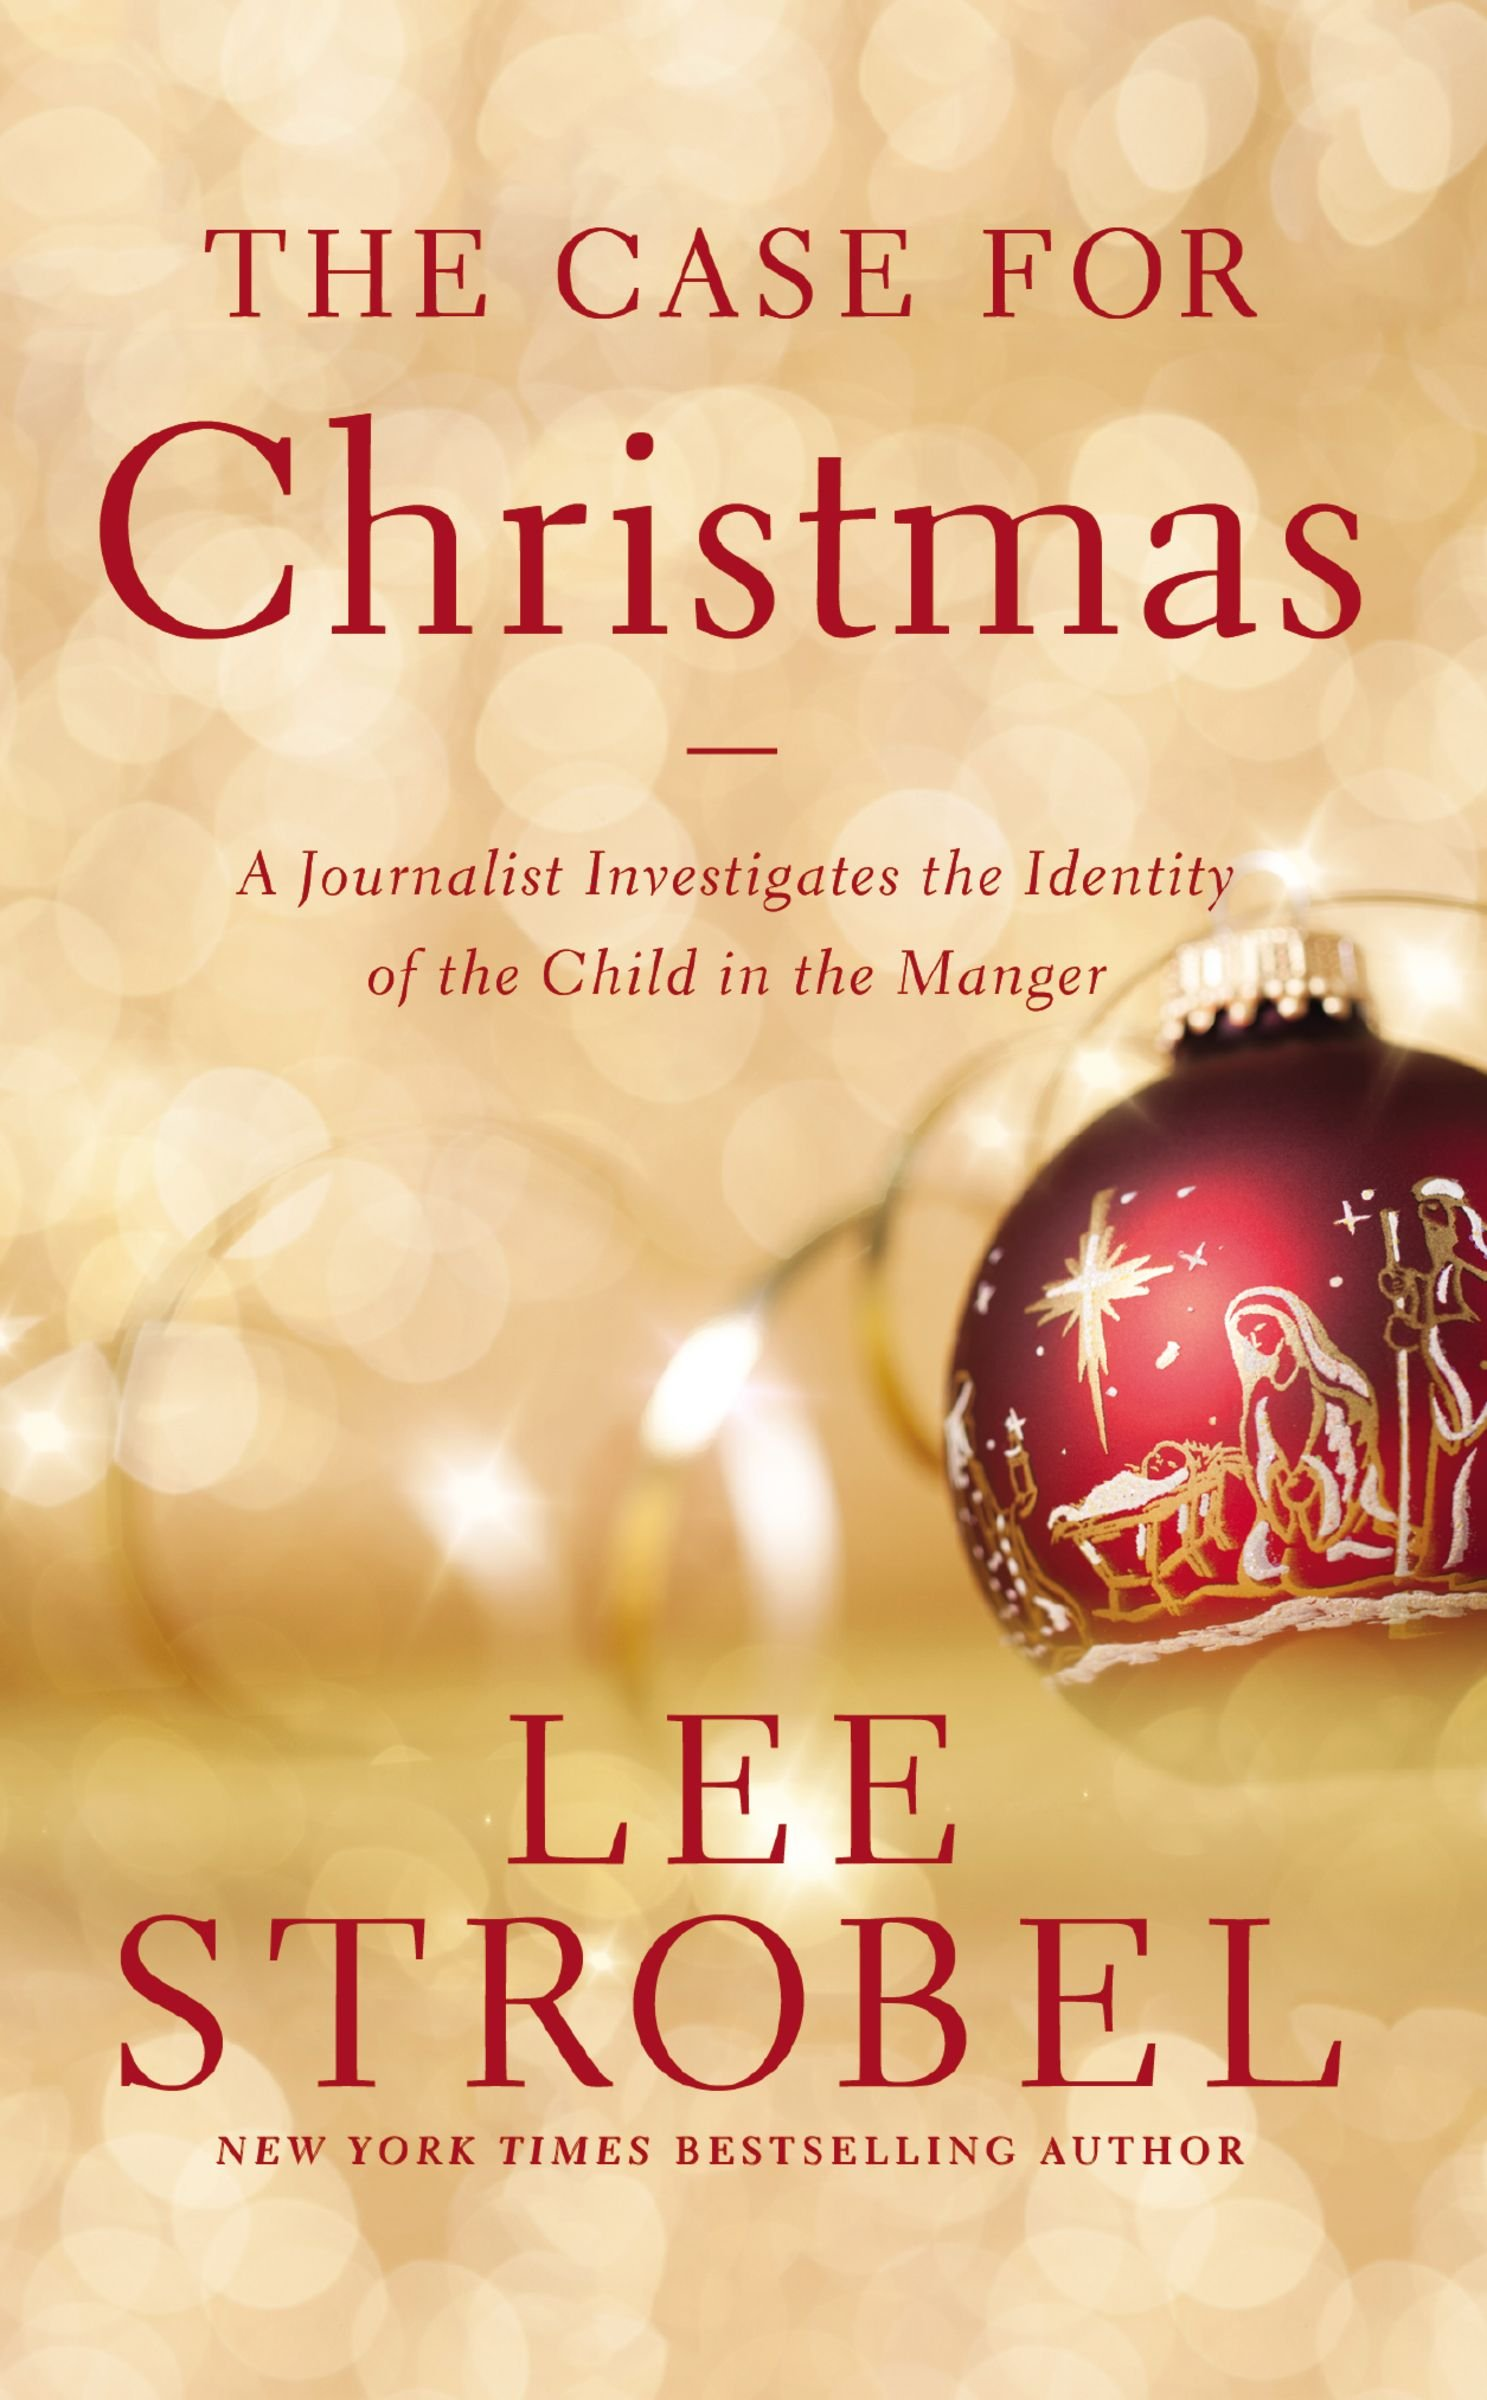 The Case for Christmas: A Journalist Investigates the Identity of the Child in the Manger - Lee Strobel epub/mobi